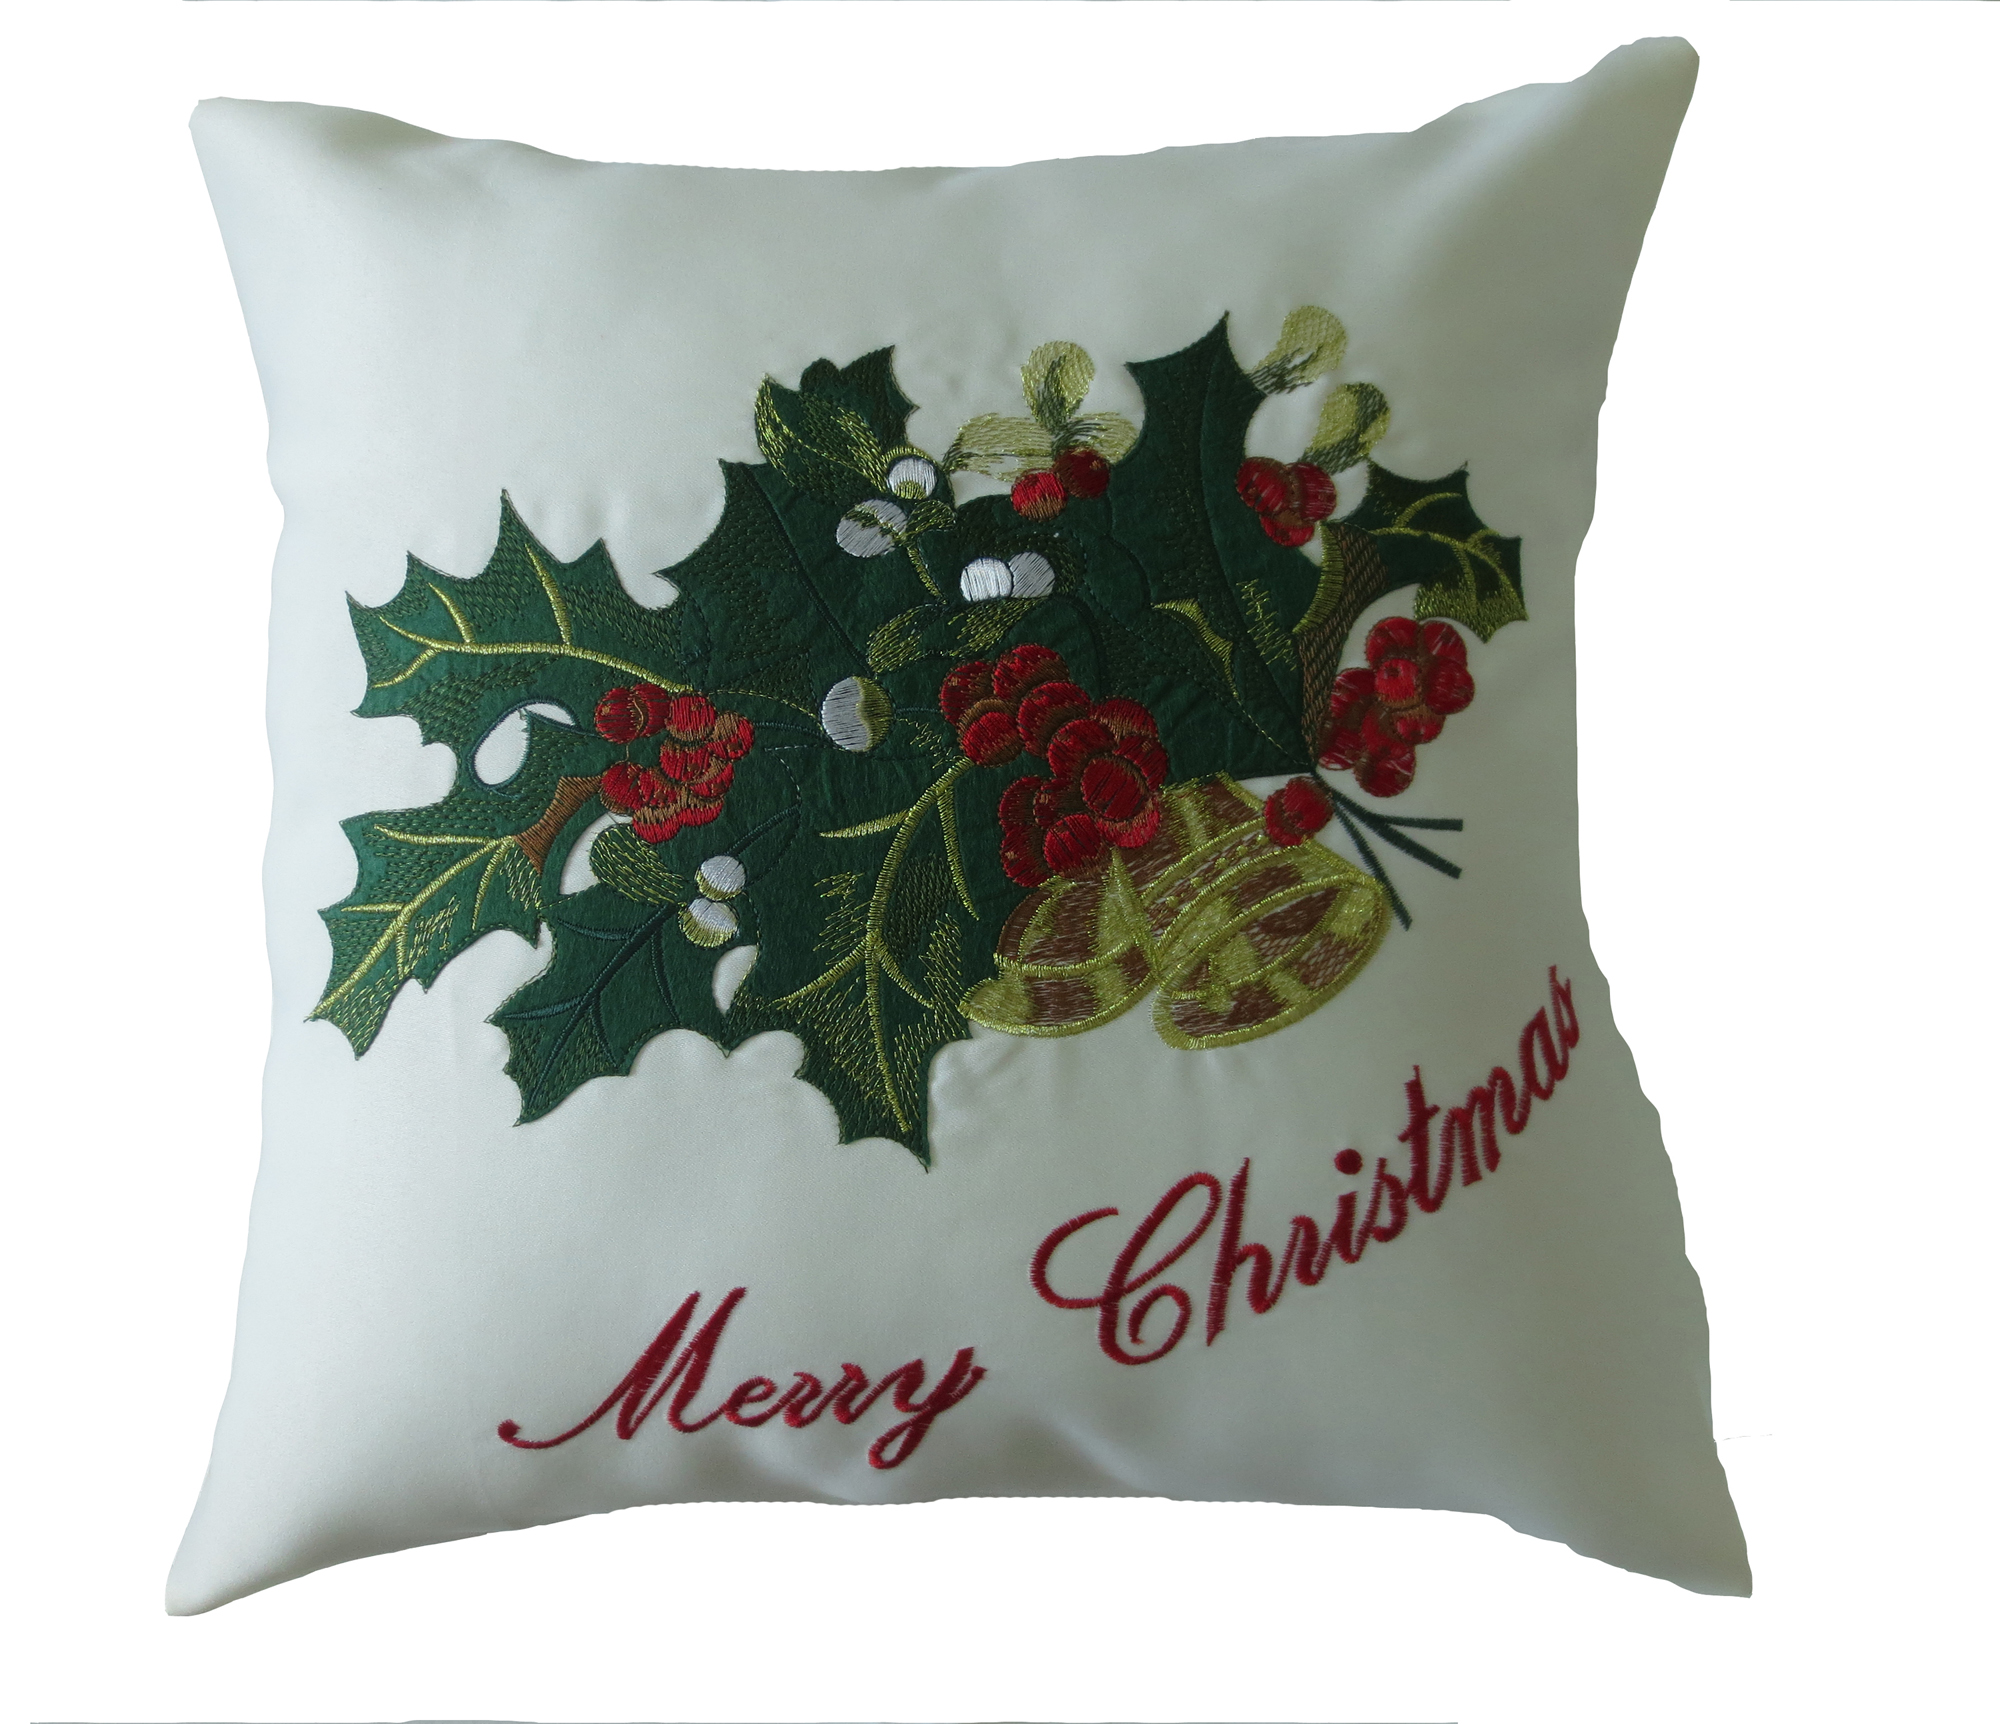 Cushion Covers Christmas Decorative Cushion Cover Embroidered Merry Christmas With